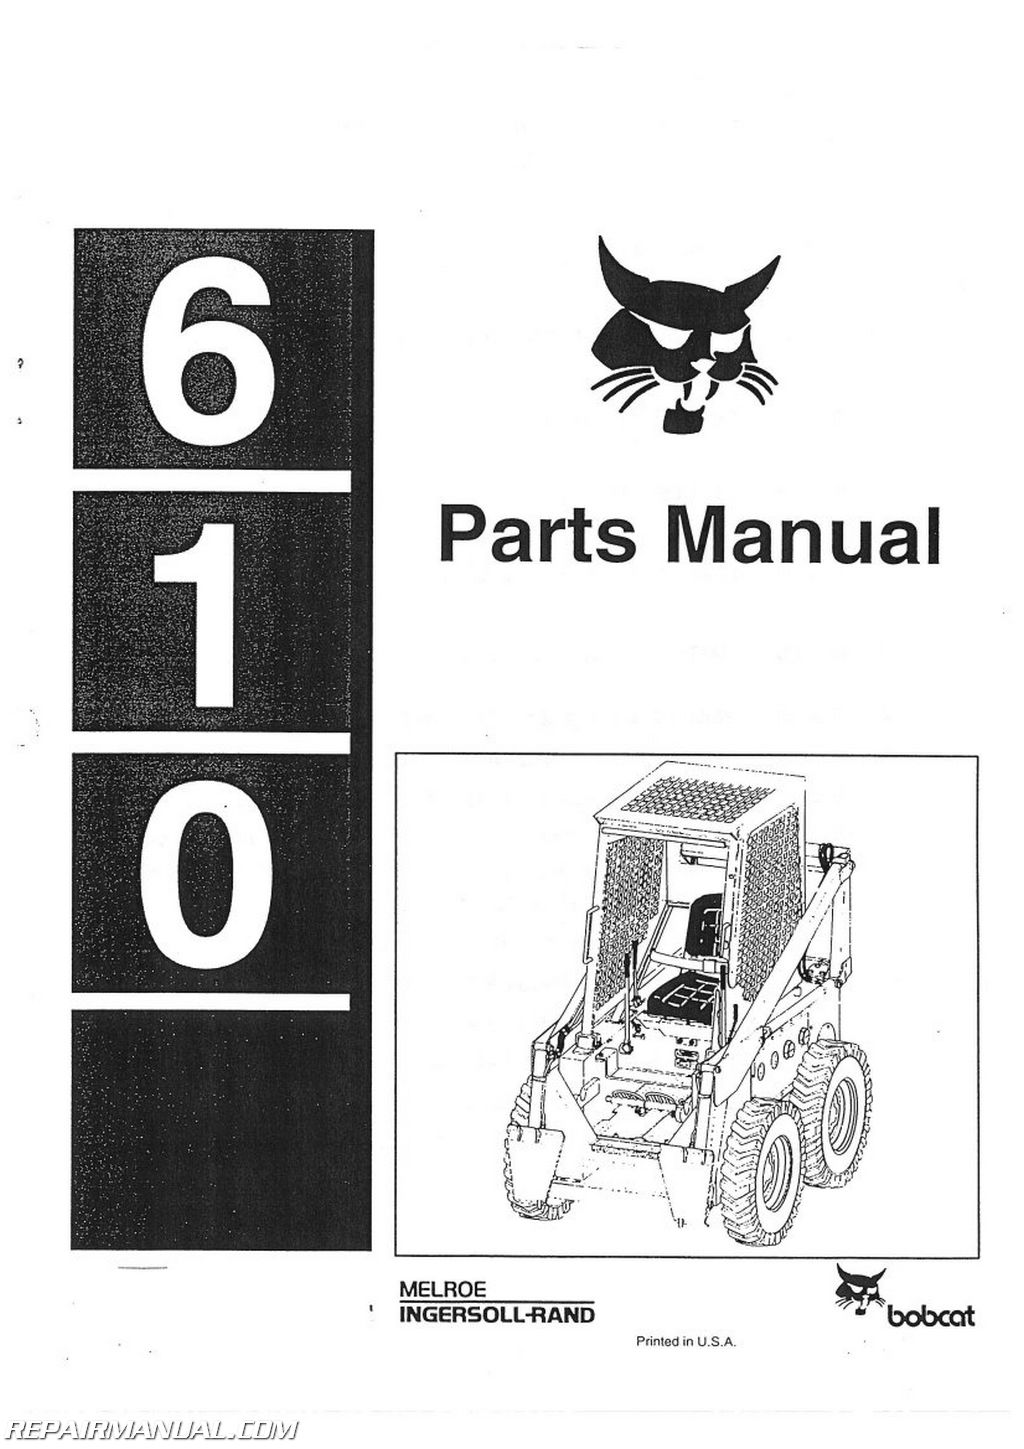 hight resolution of bobcat 610 parts manual bobcat 610 parts manual pdf bobcat 610 parts diagram